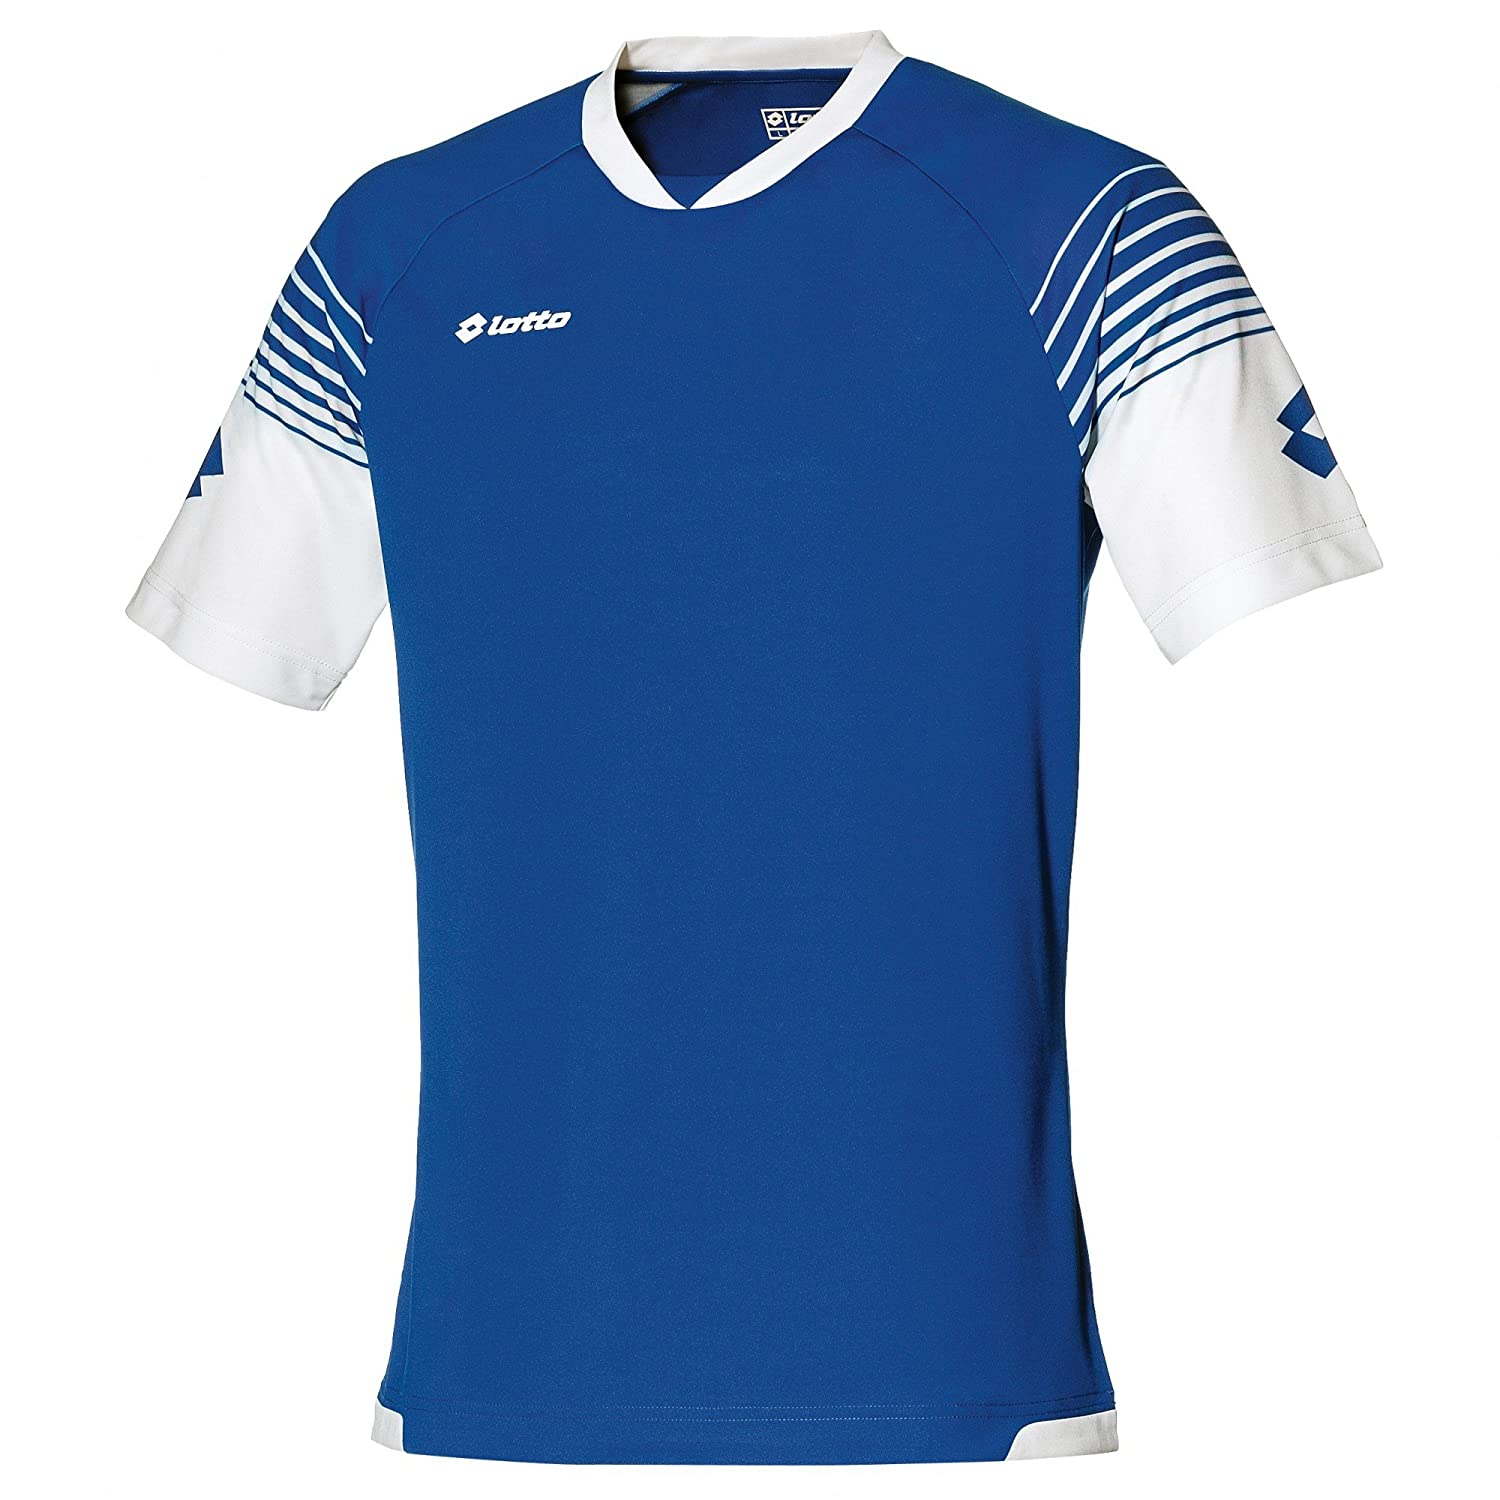 60b1e562ced Lotto Mens Football Jersey Omega Sports T-Shirt (2XL) (White/Black):  Amazon.in: Clothing & Accessories